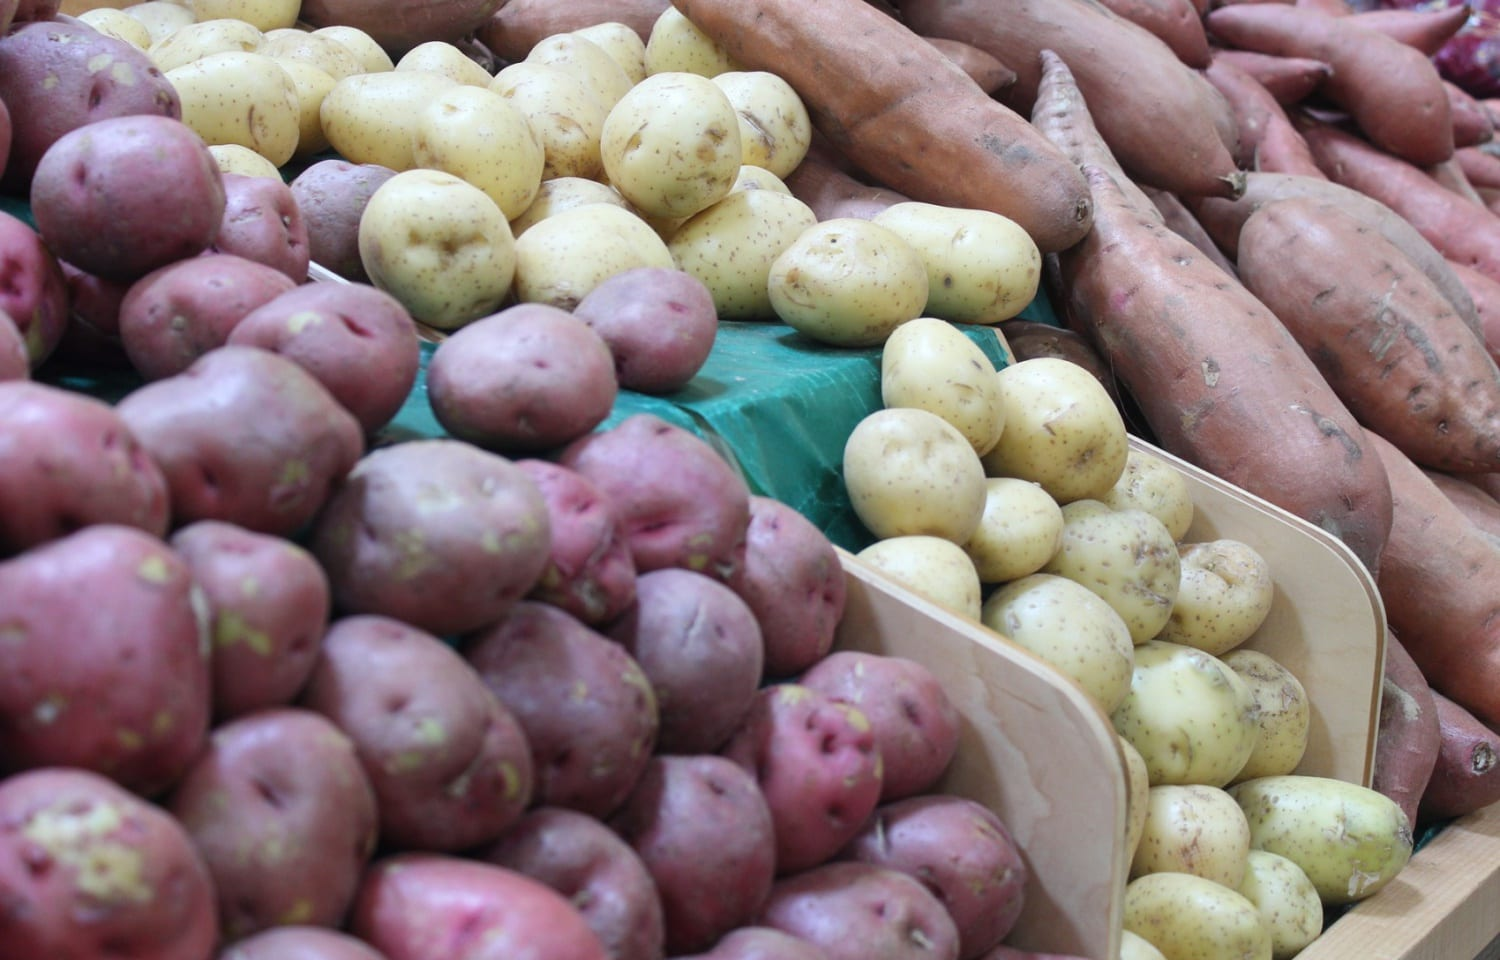 Covid-19 shakes up the world potato market